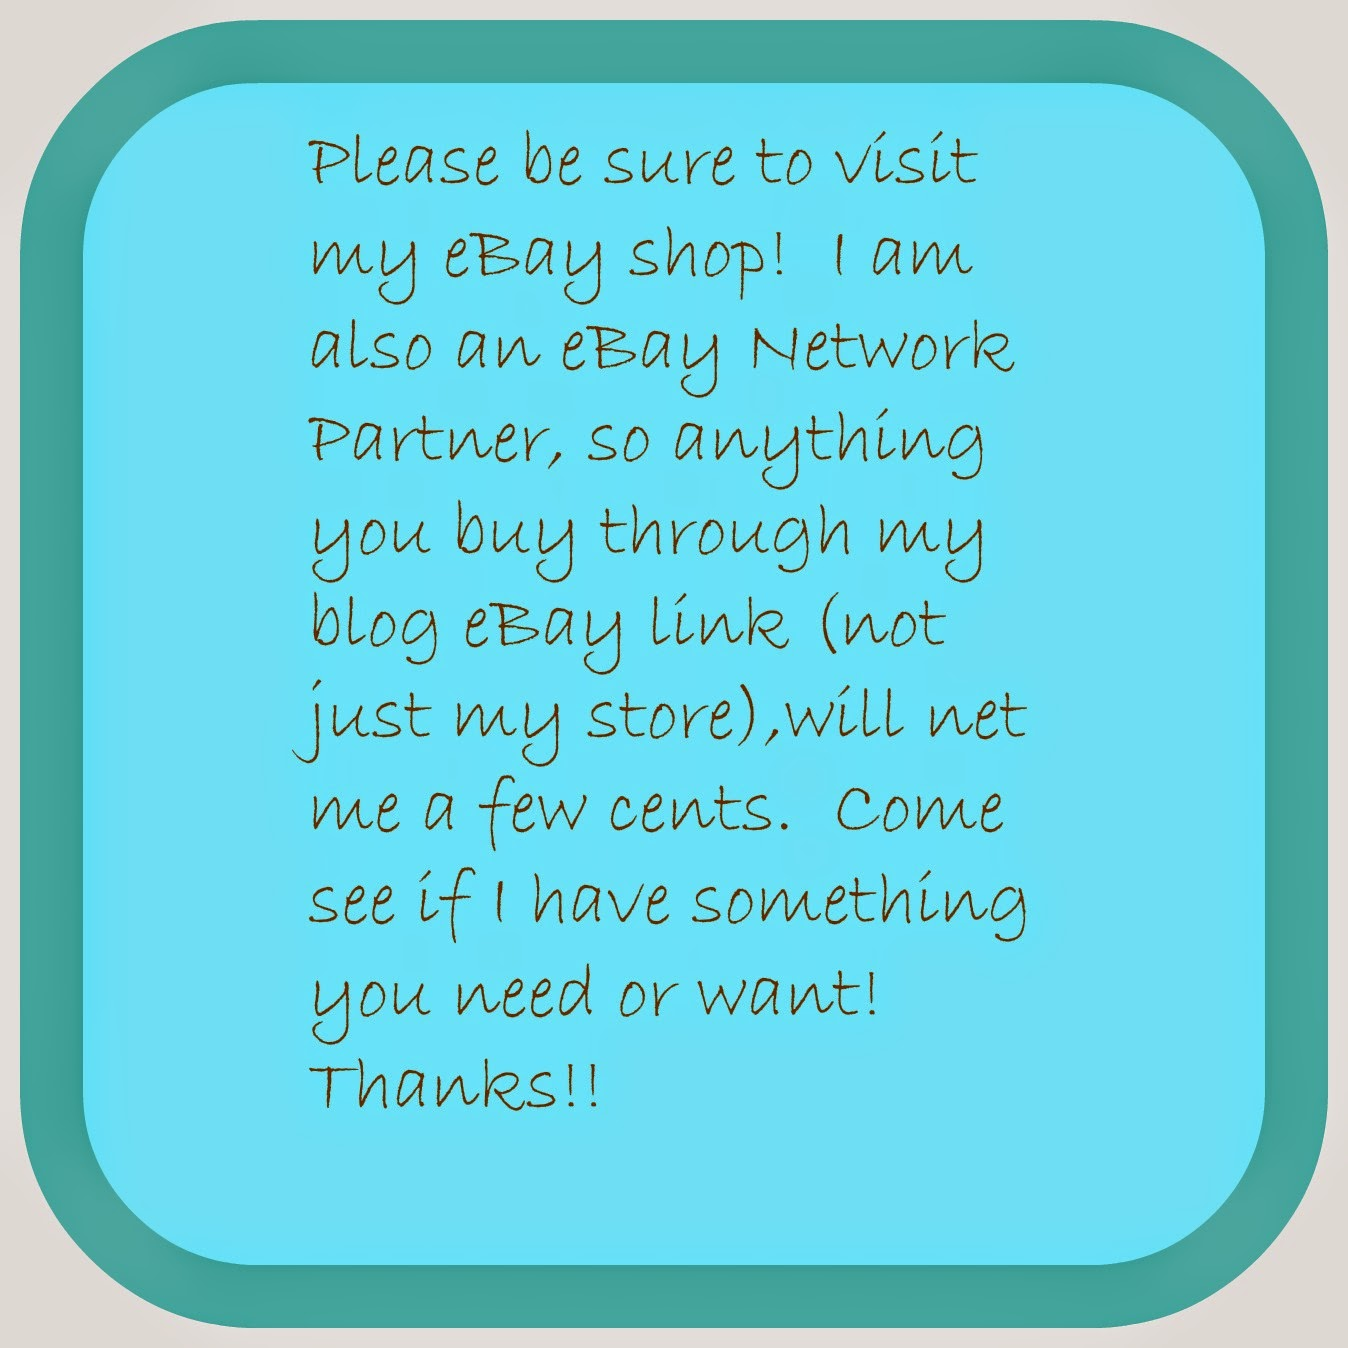 Check out my eBay